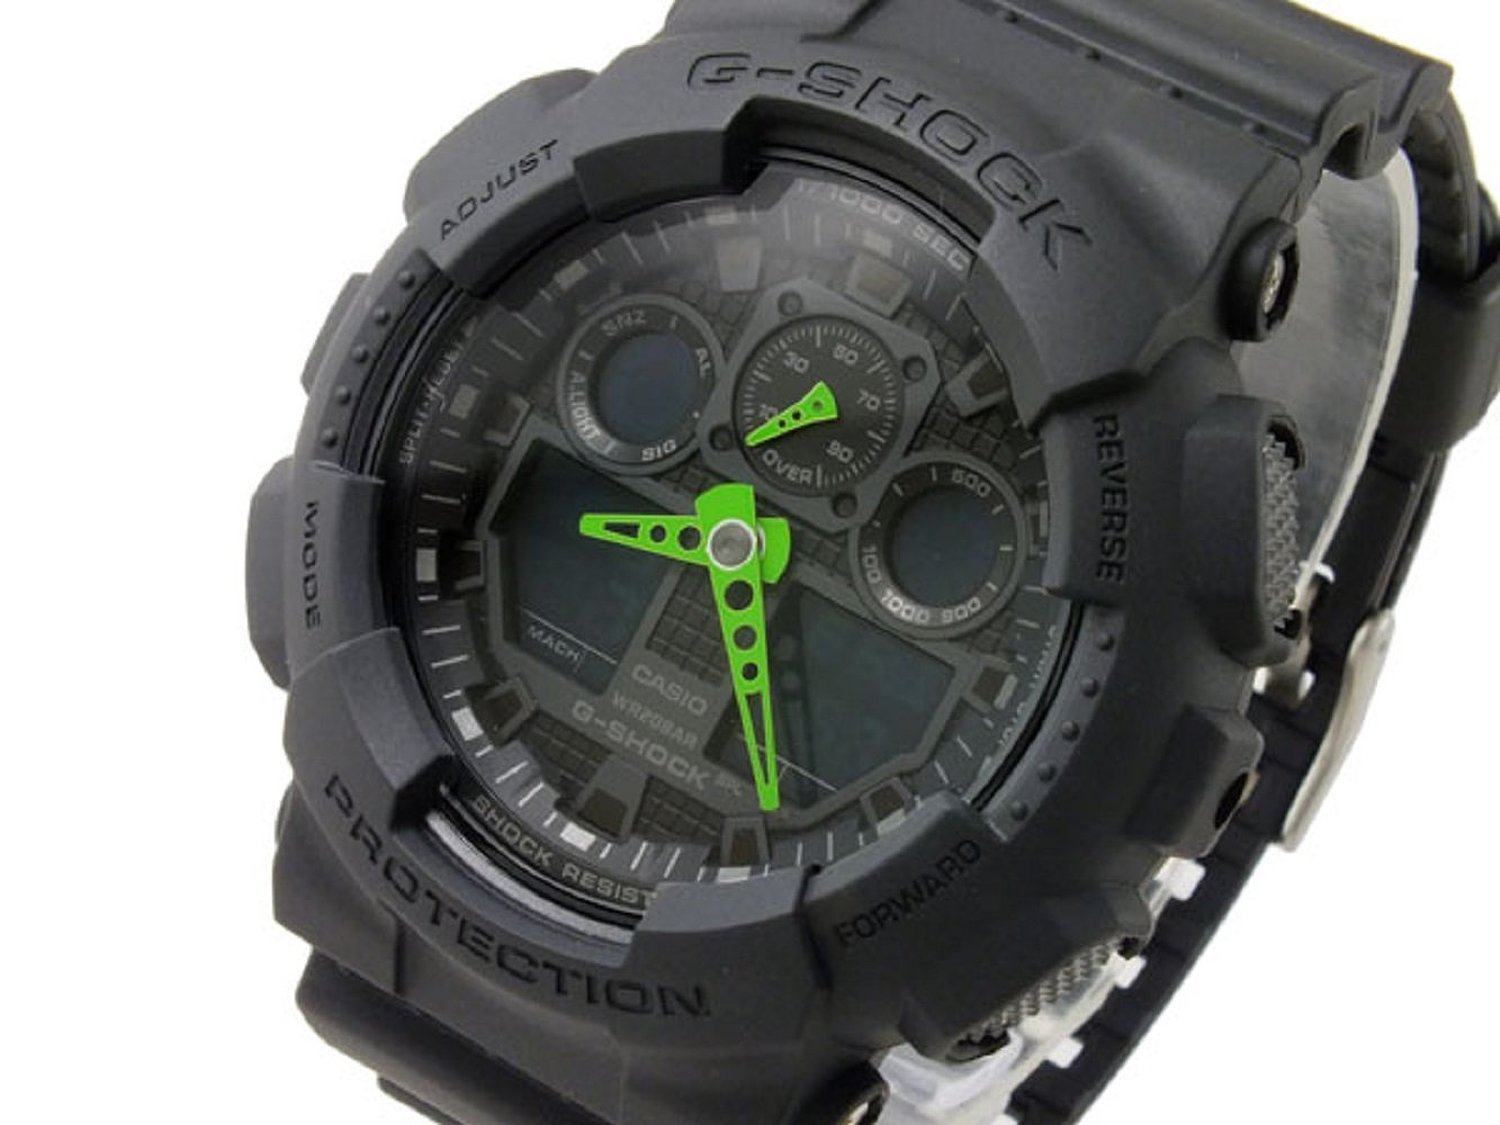 Auc Gross G Shock Casio Watch Mens Ga 100c 1 A 3 Digital And Analog 100l 1a Very Popular Series Of Appeared From Will Not Break In 1983 As The With Range Advanced Technologies Excellent